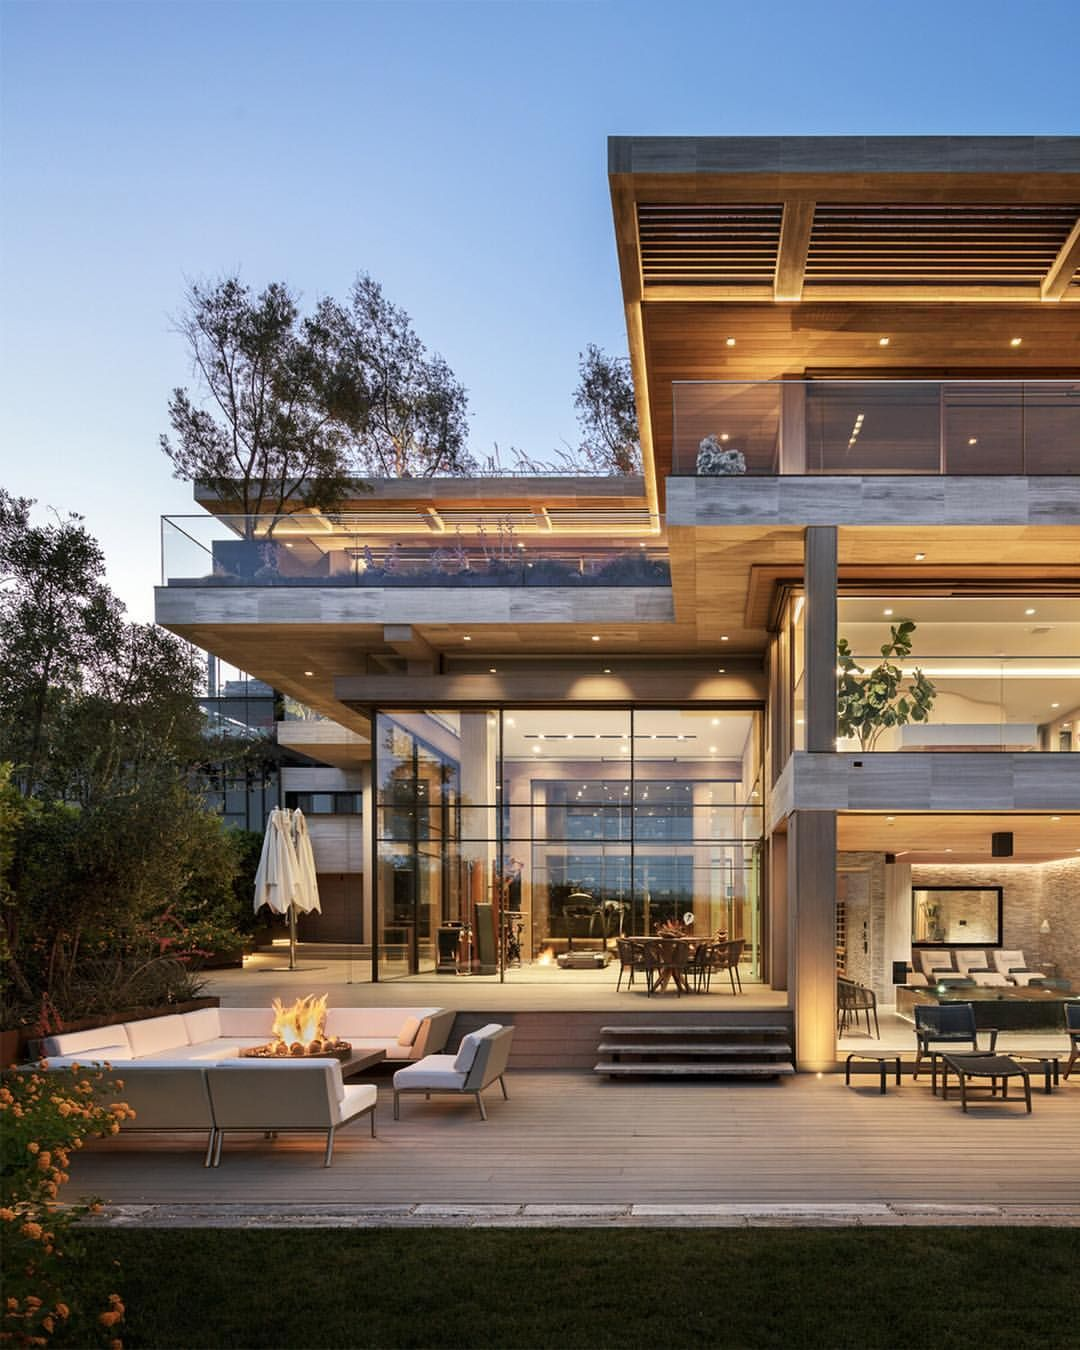 Sarbonne Residence Designed By Arya Group In Bel Air Architecture Belair Archite House Designs Exterior Modern House Exterior Modern Architecture House